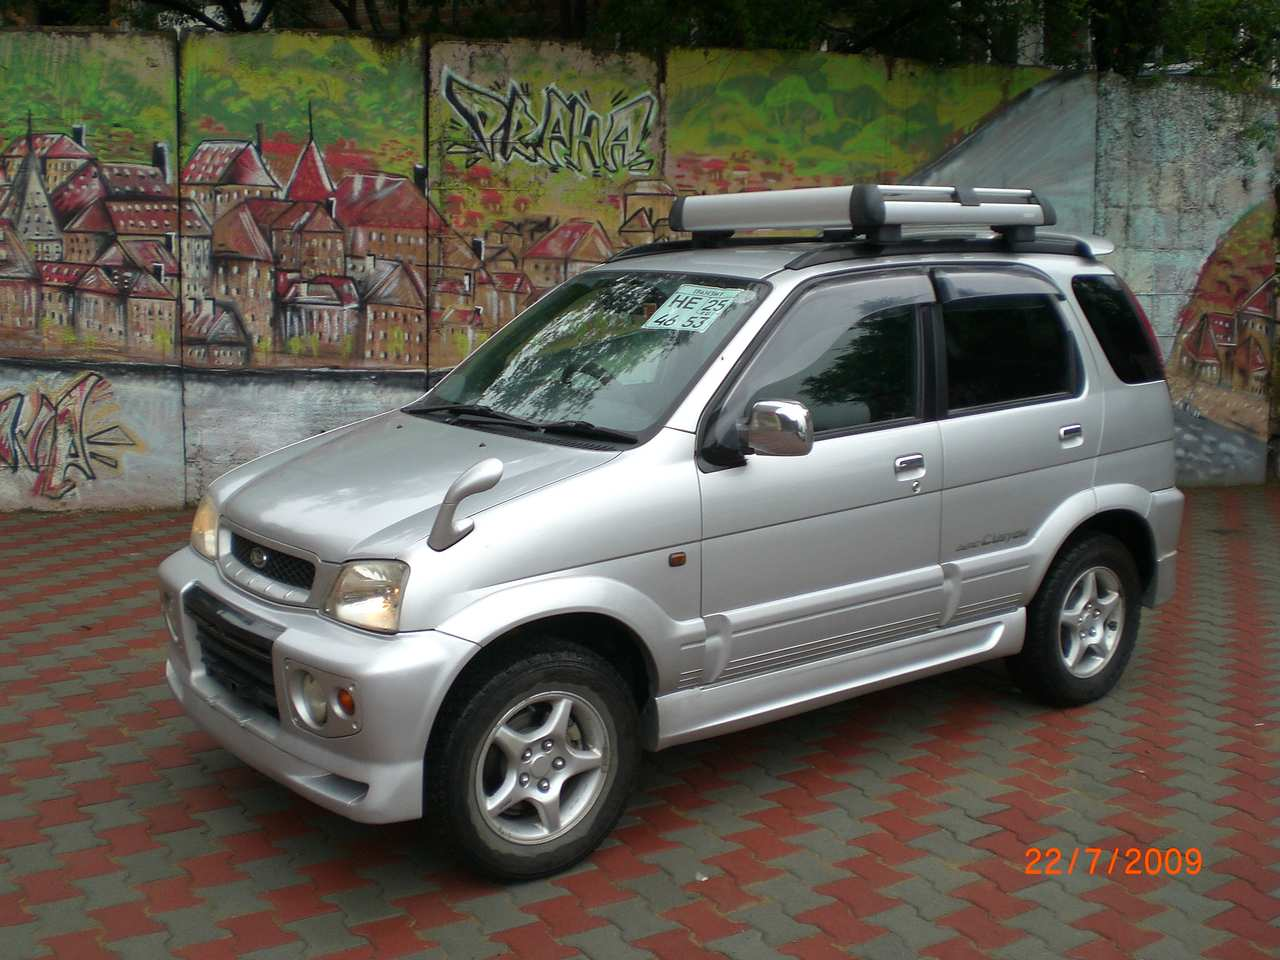 Used 2000 Daihatsu Terios Photos 1 3 Gasoline Automatic